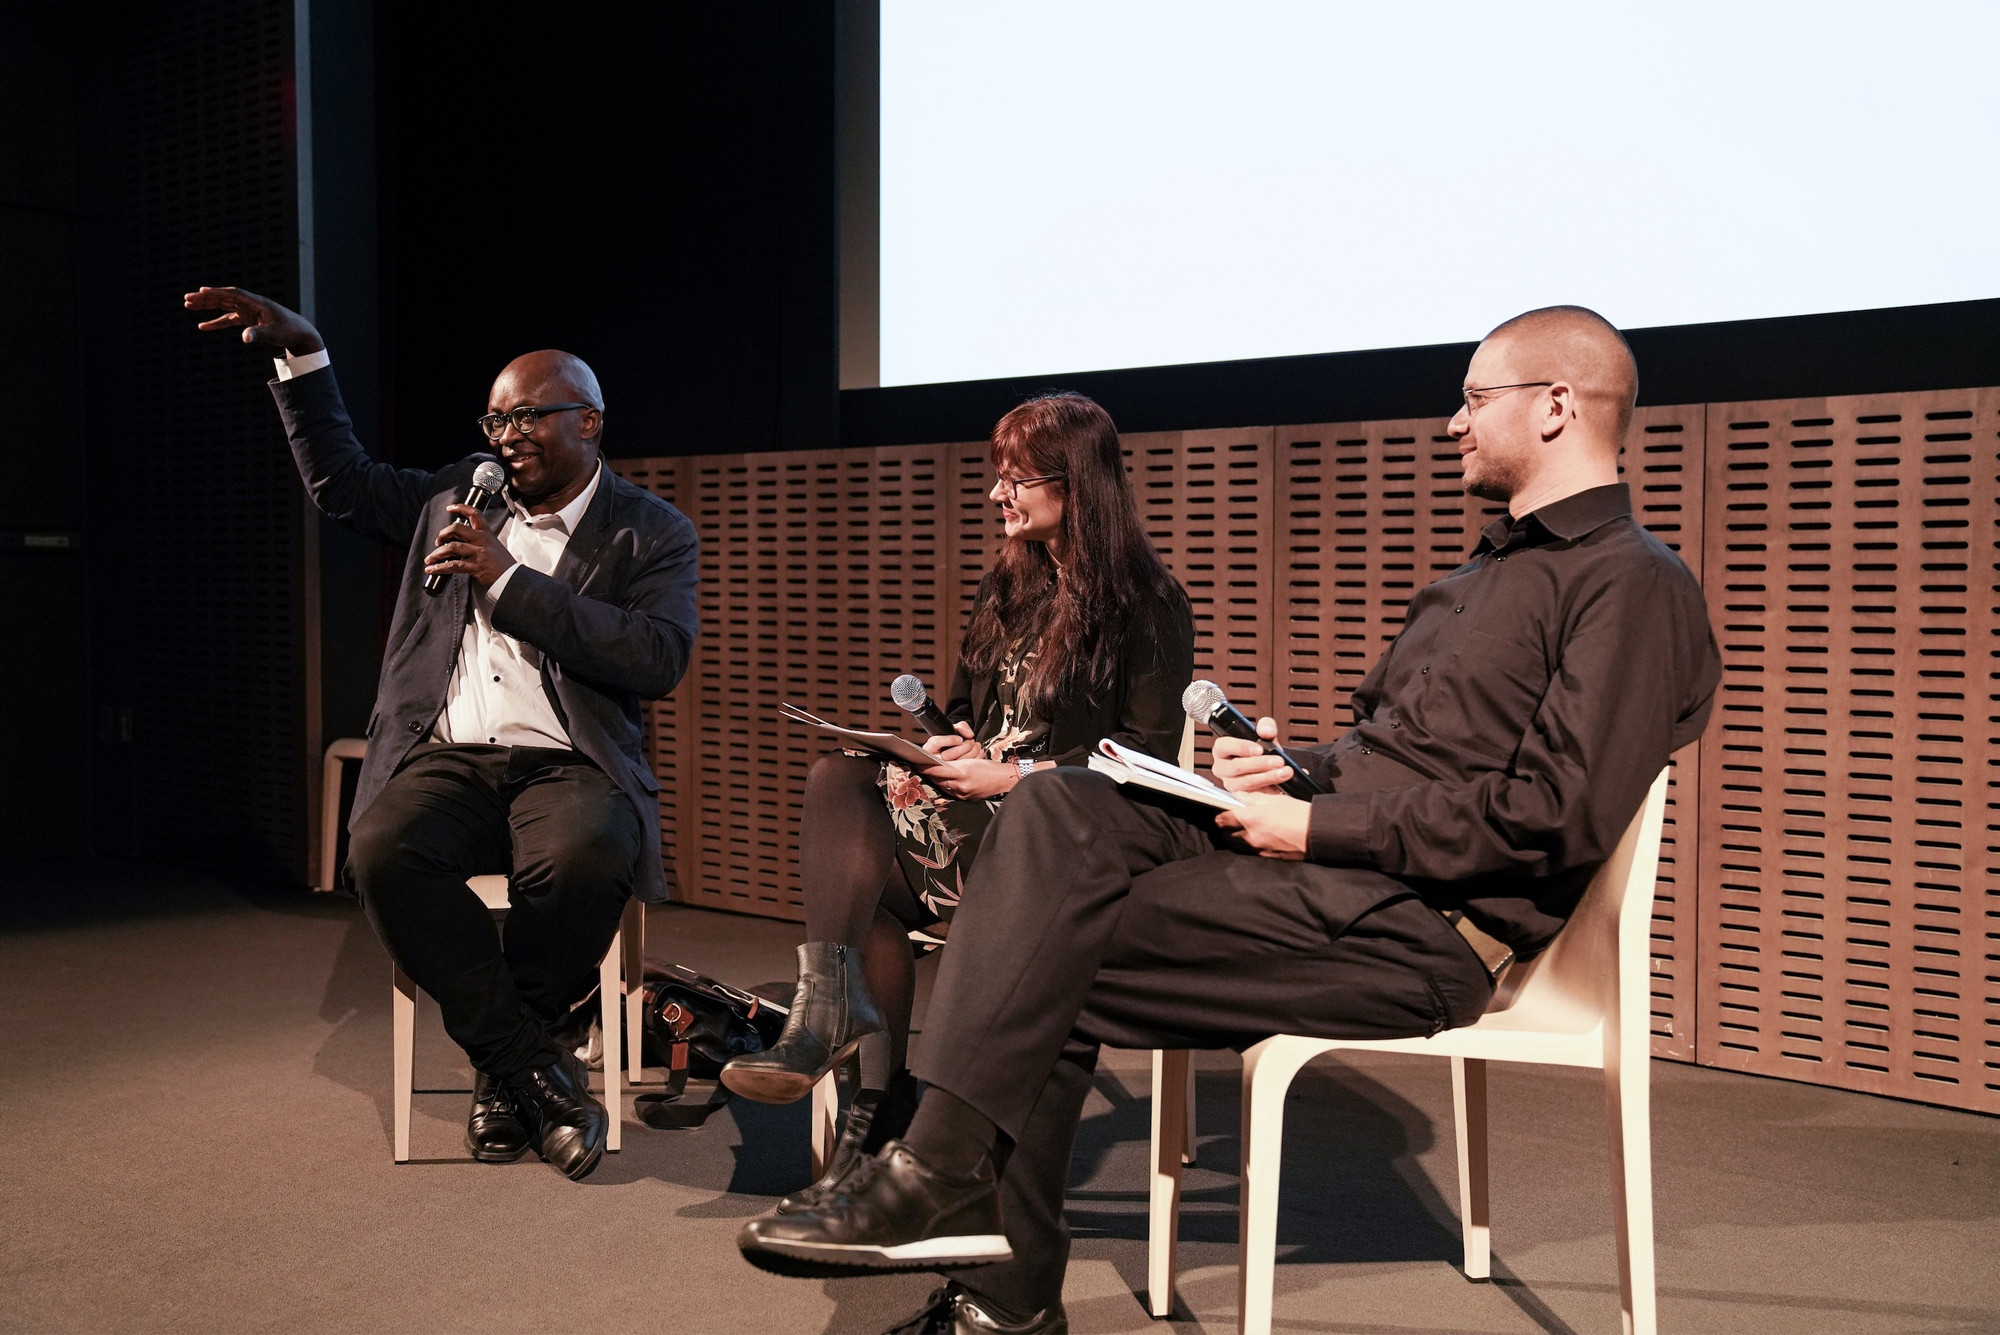 Achille Mbembe, Iberia Pérez González, and Max Jorge Hinderer in the symposium to mark the 10th anniversary of C-MAP, The Multiplication of Perspectives. Photo: Julieta Cervantes